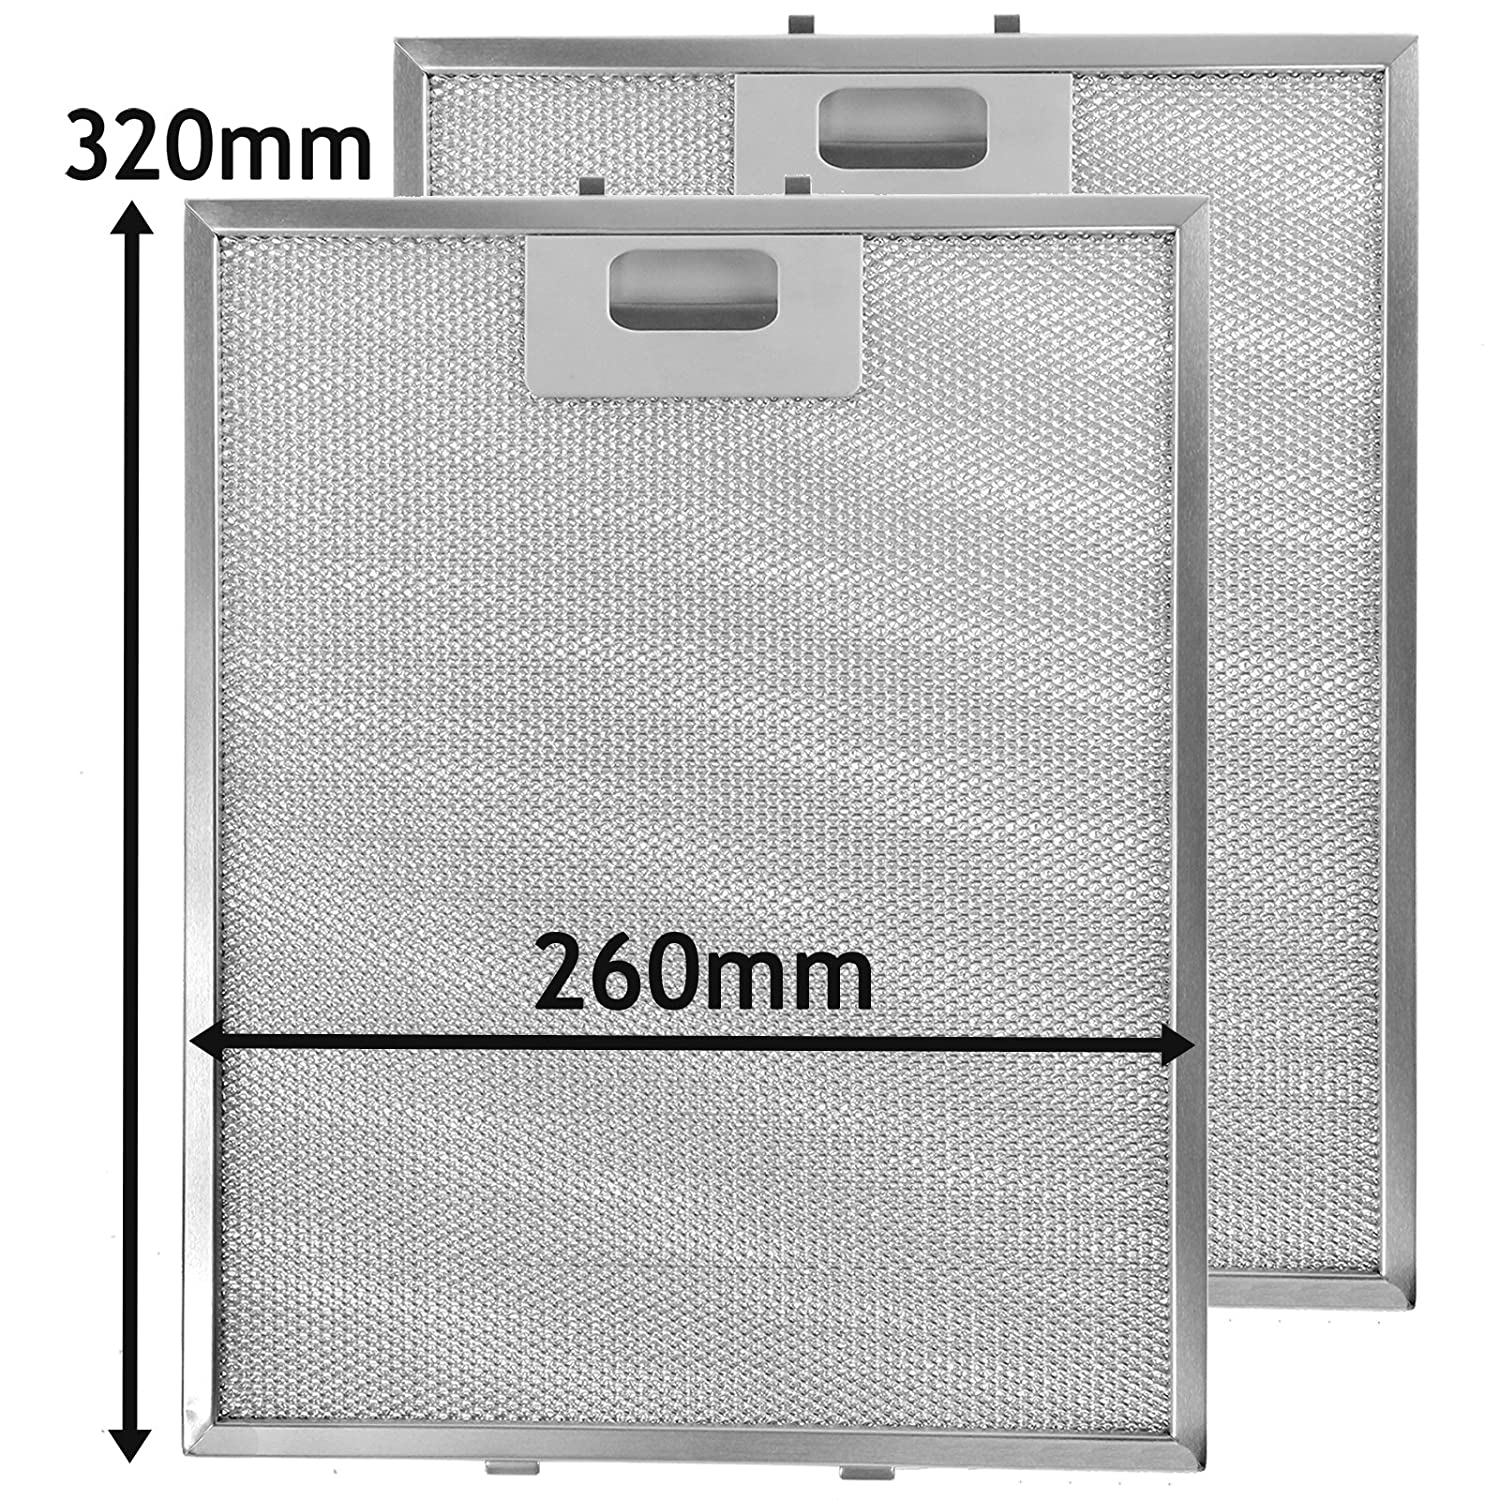 SPARES2GO Metal Mesh Filter for CDA GDA Cooker Hood/Extractor Fan Vent (Pack of 2 Filters, Silver, 320 x 260 mm)